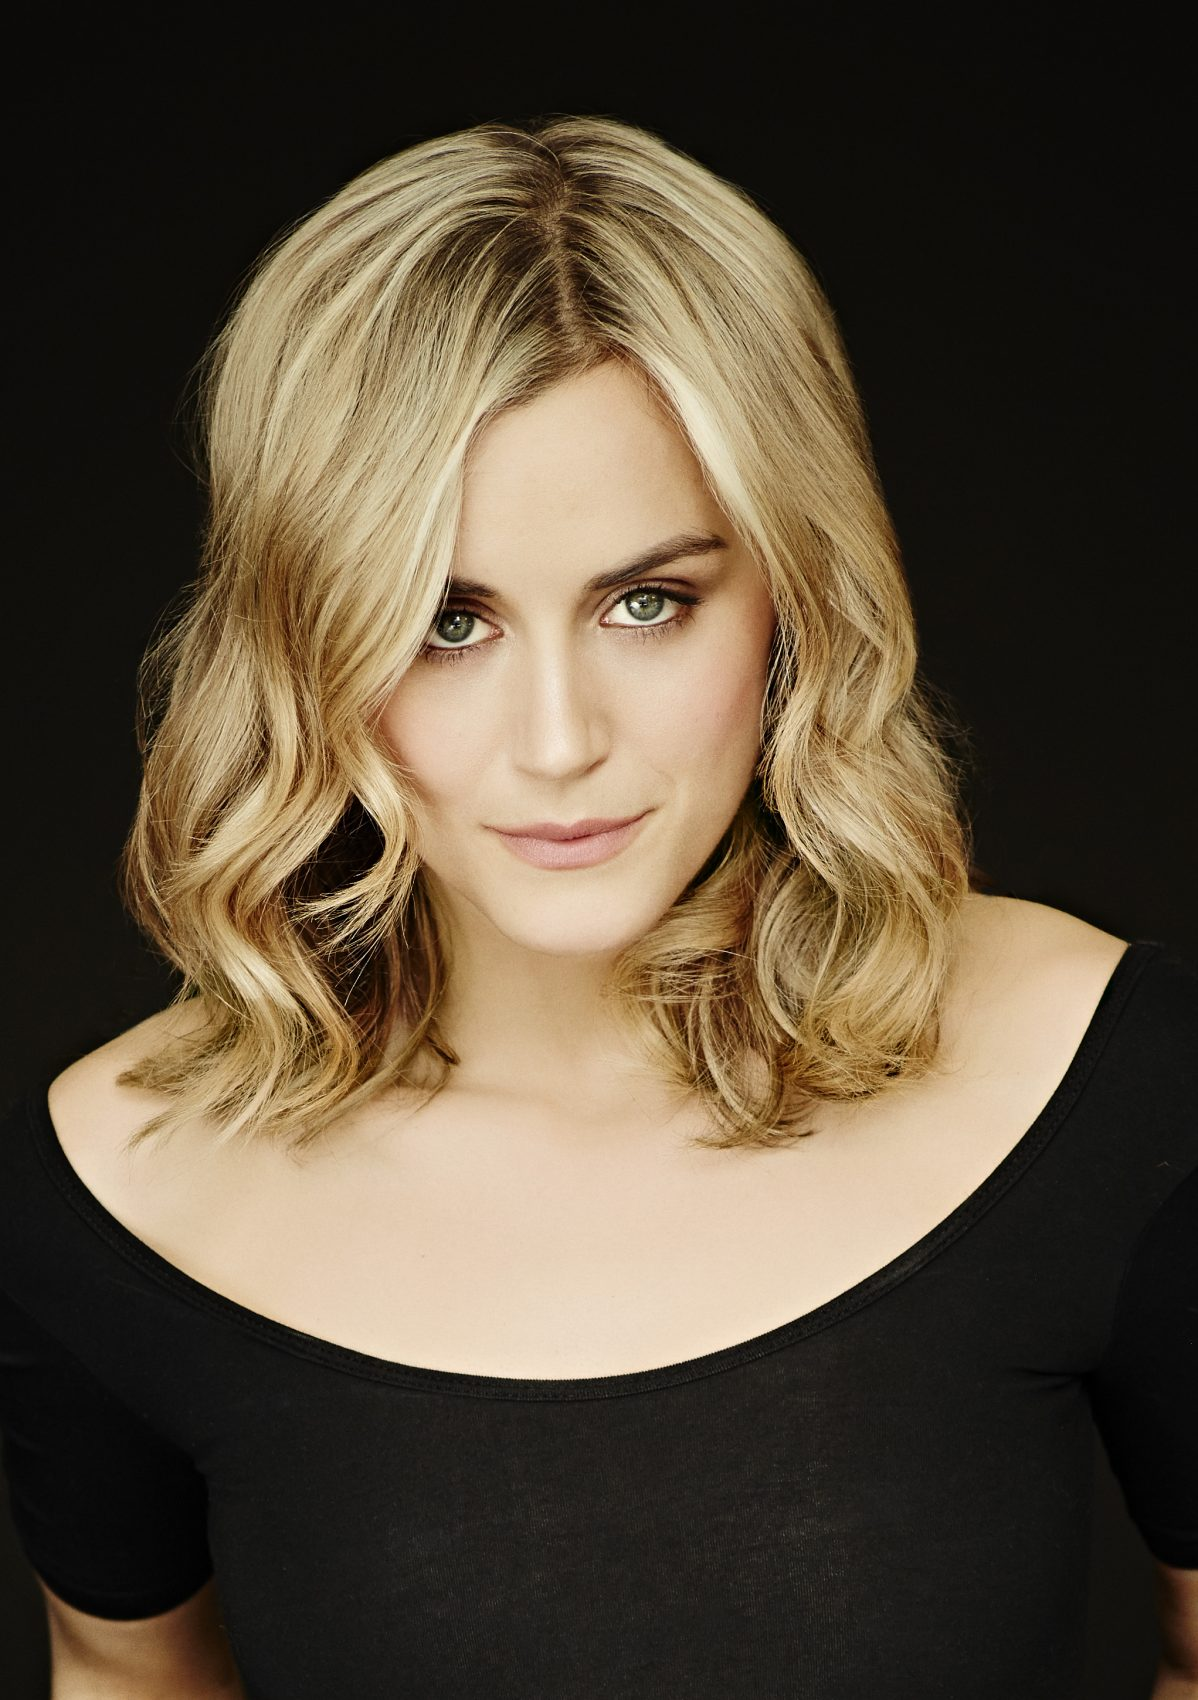 Taylor Schilling nudes (36 pics), photo Paparazzi, YouTube, cleavage 2017